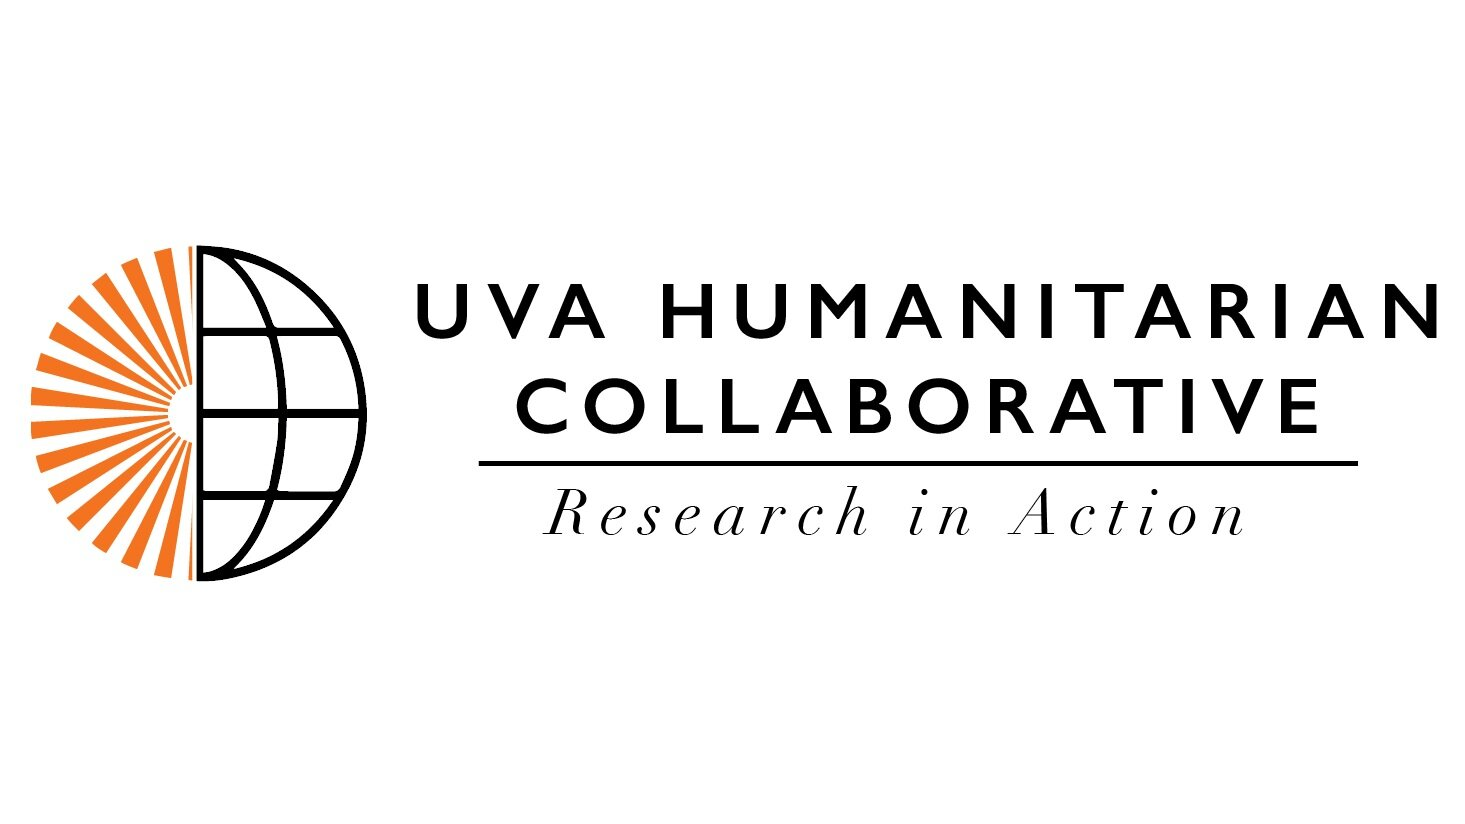 UVA Humanitarian Collaborative